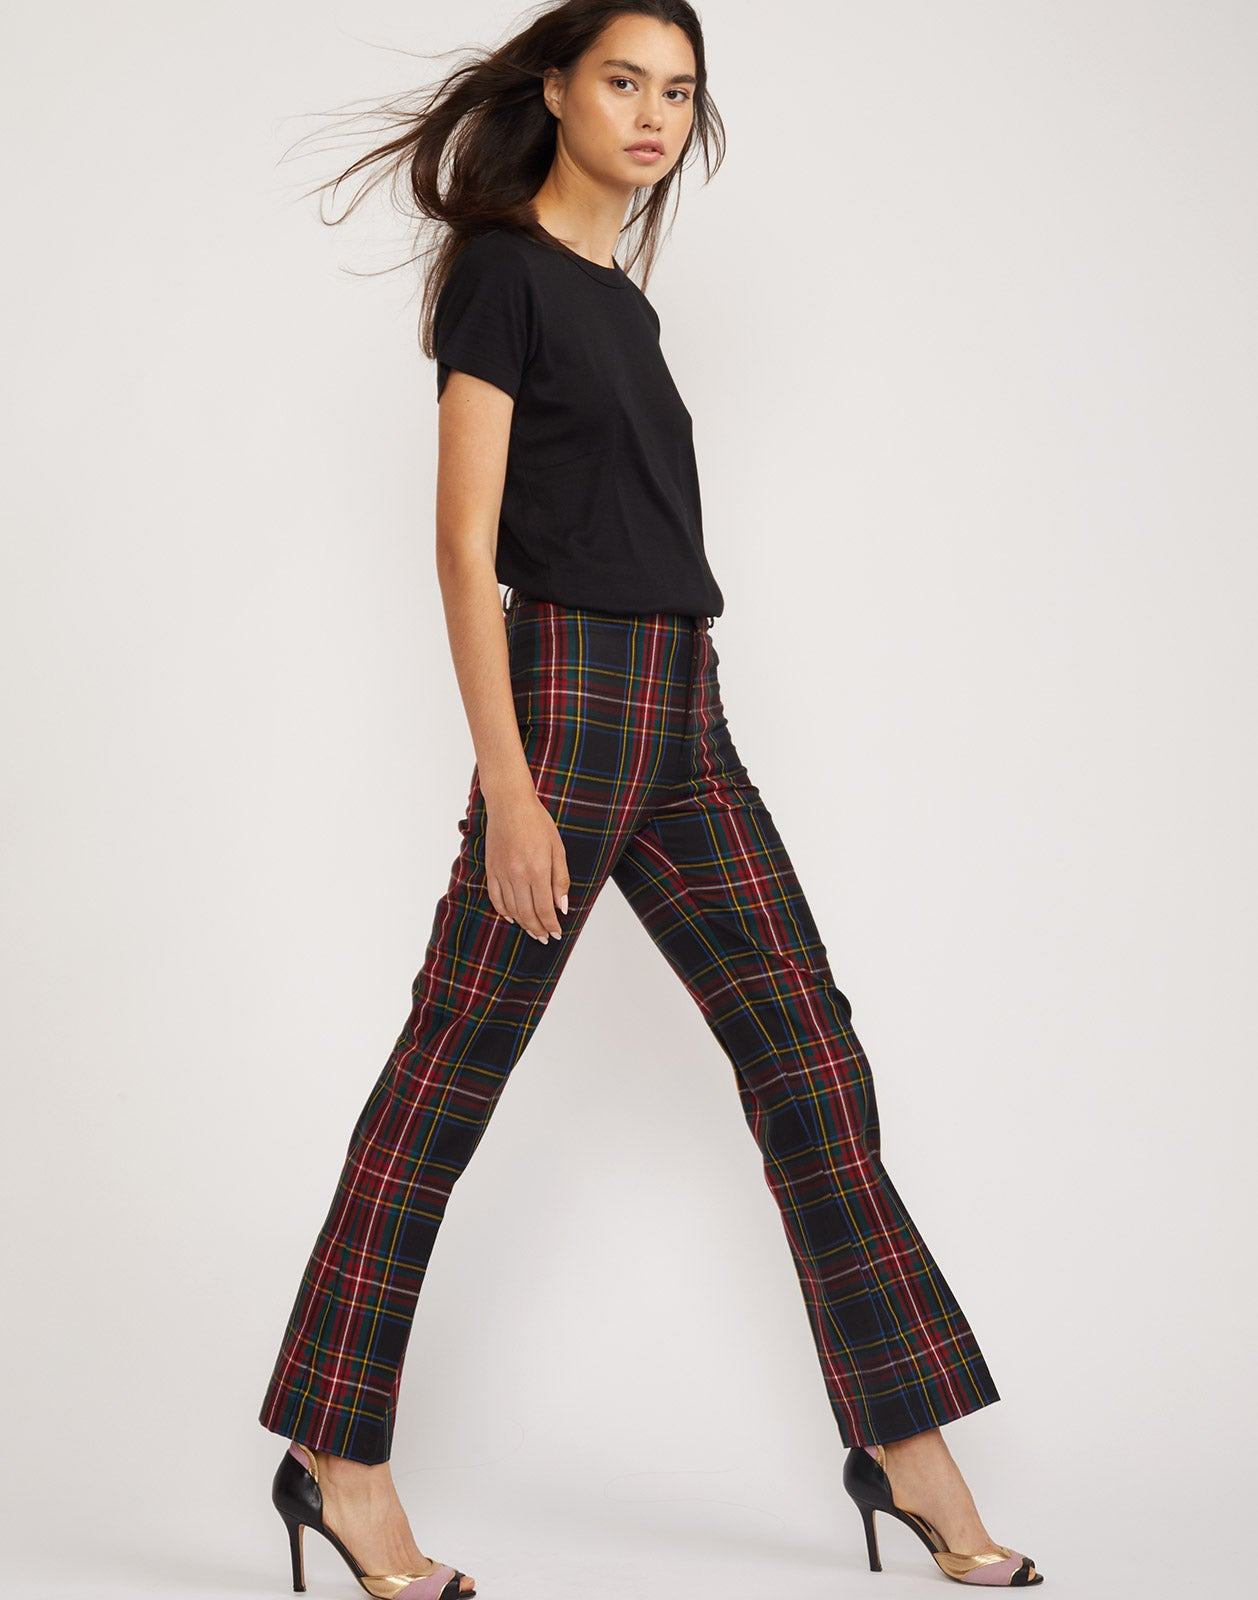 Full side view of the Astor plaid wool pants.